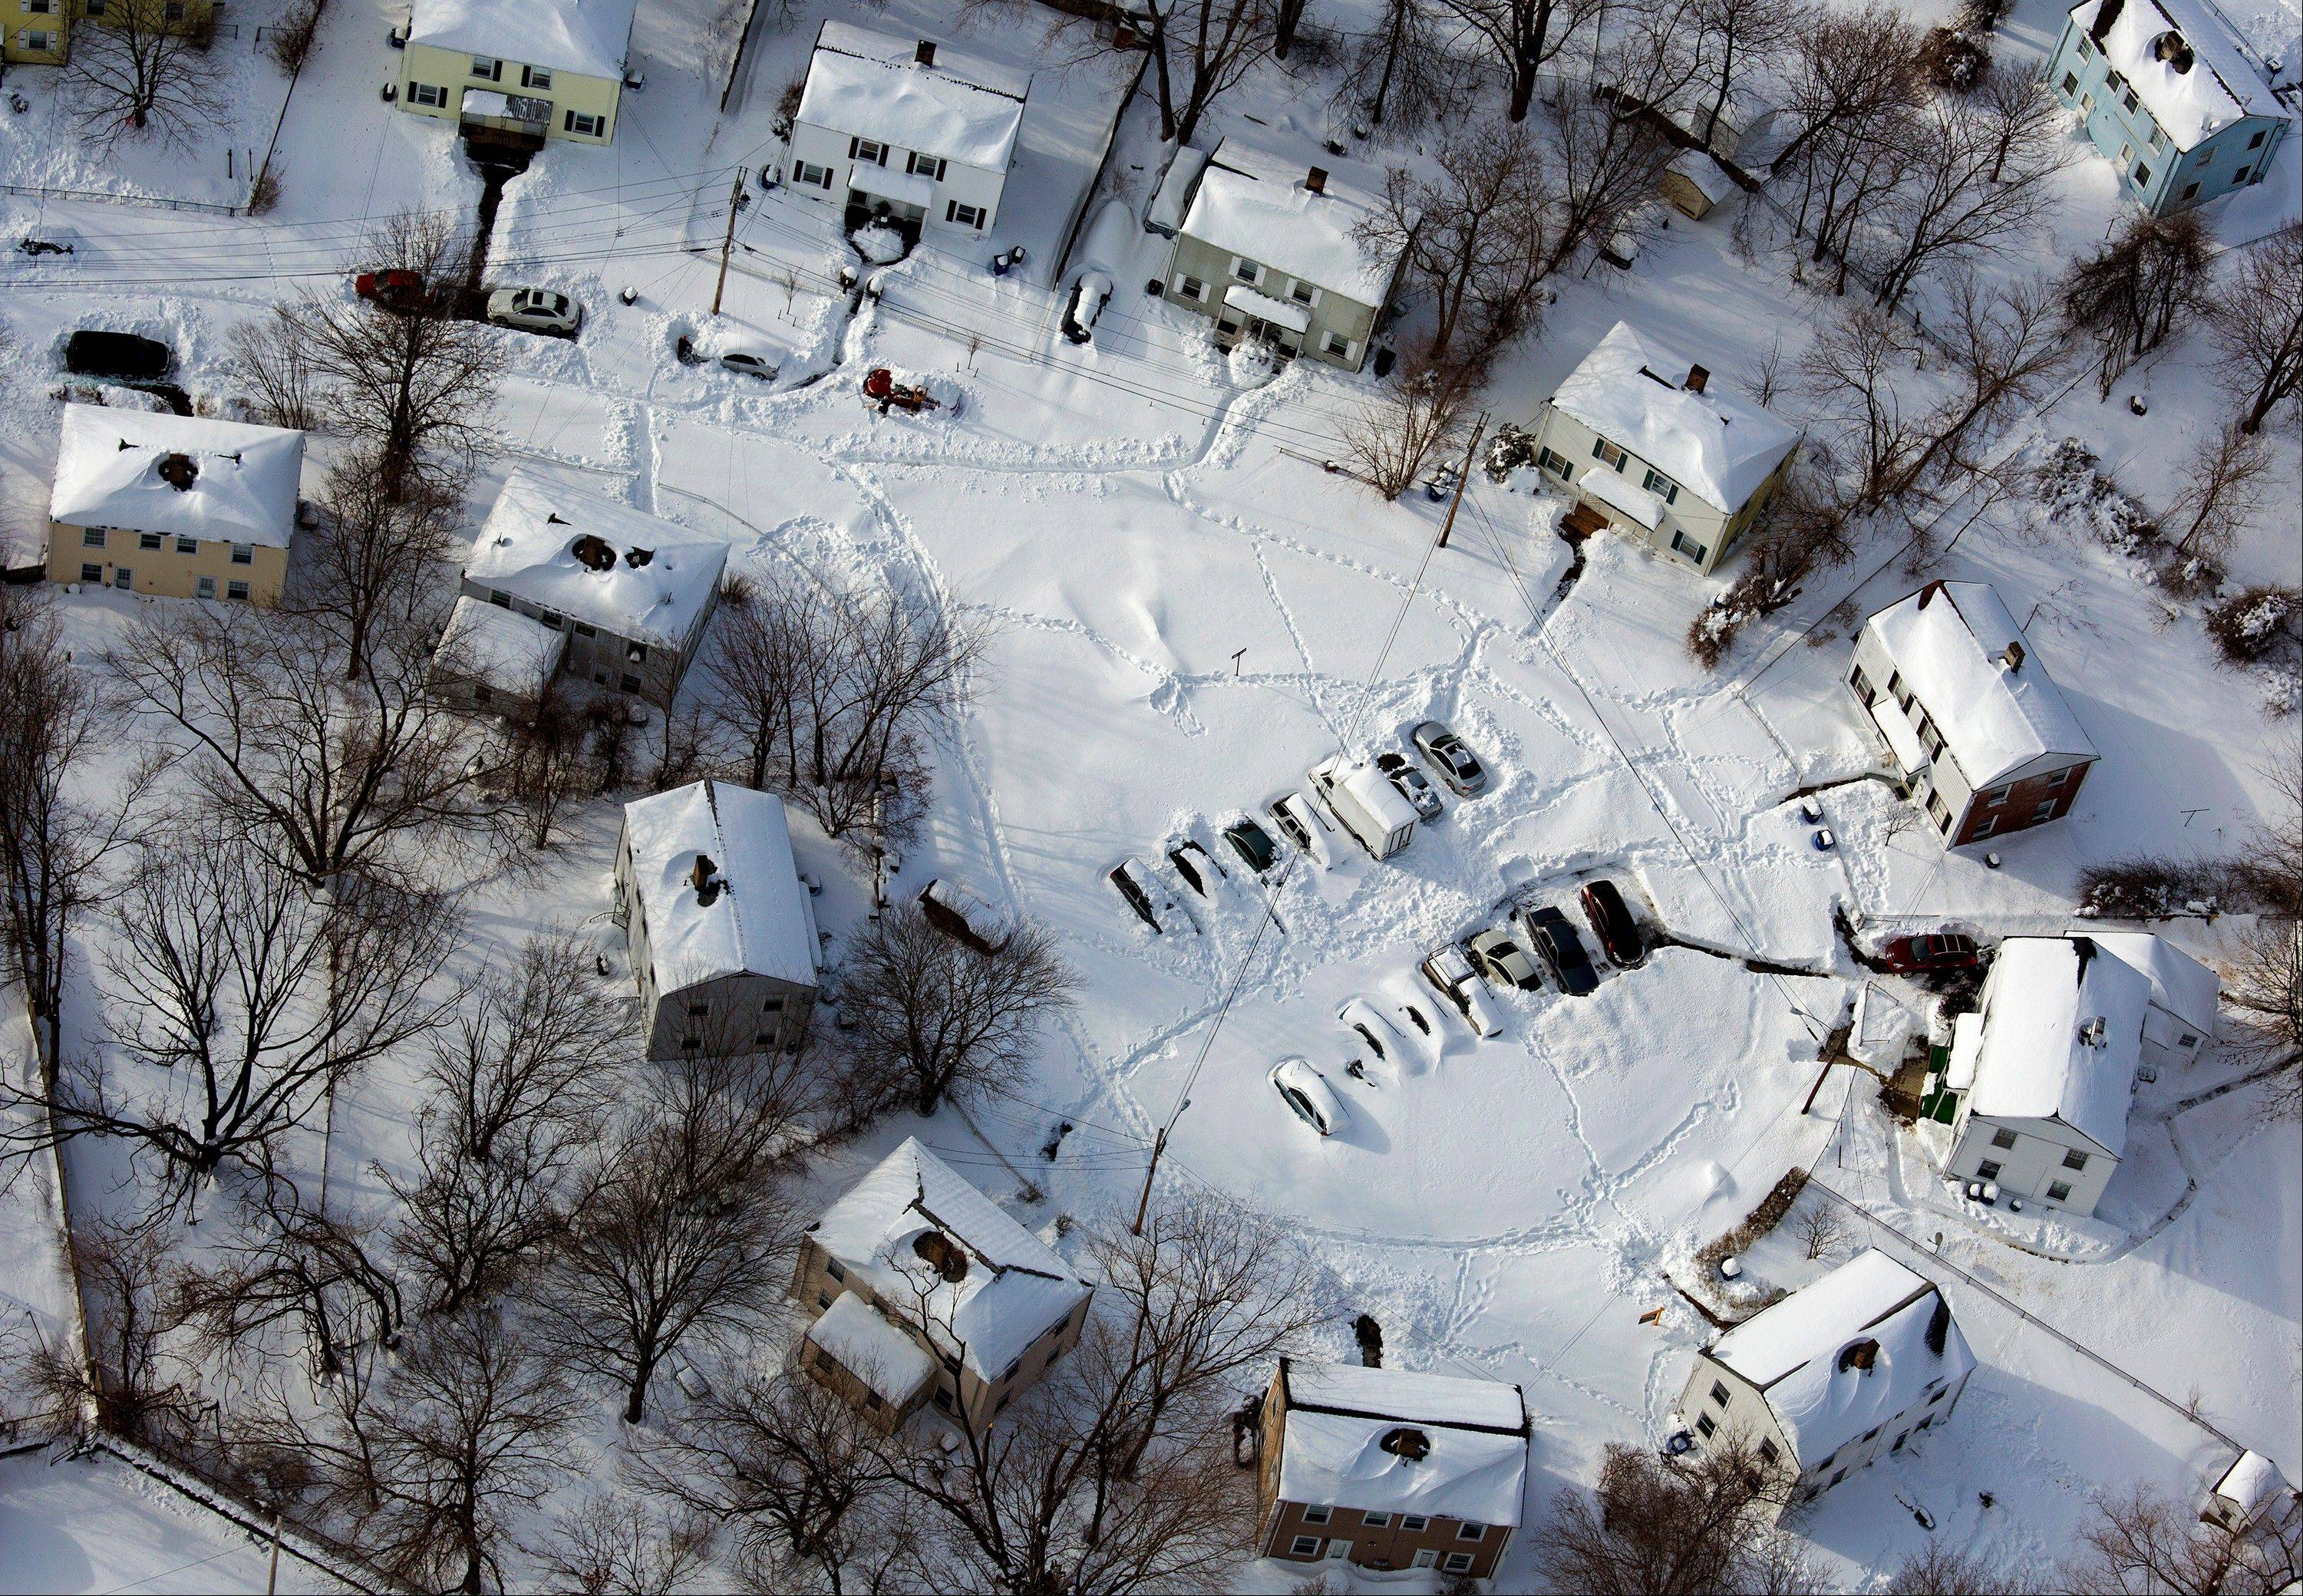 A neighborhood near New Haven, Conn., is buried in snow Sunday in the aftermath of a storm that hit Connecticut and much of New England Friday and early Saturday morning.